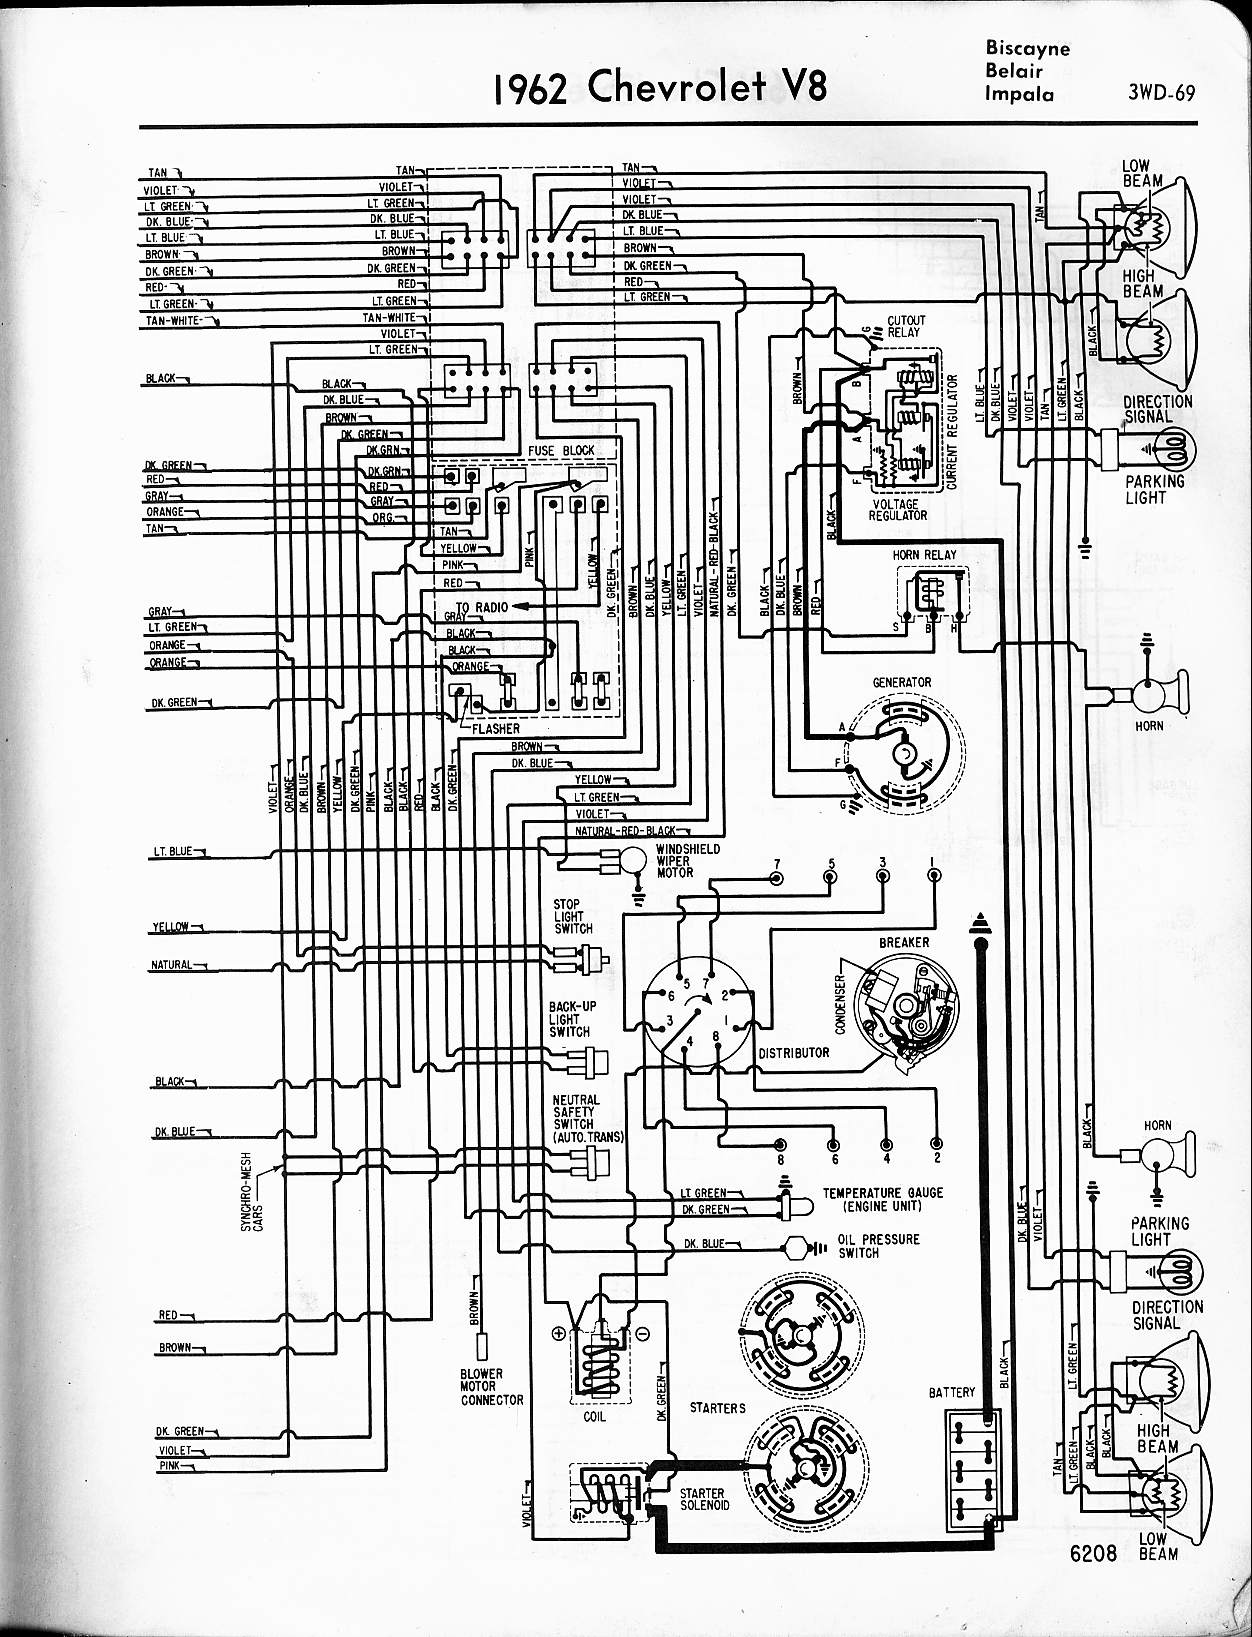 57 65 chevy wiring diagrams 57 Chevy Alternator Wiring Diagram 57 chevy wiring diagram 1959 Chevy Wiring Diagram 1993 Chevy 1500 Fuse Box Diagram 57 Chevy American Autowire Wiring-Diagram